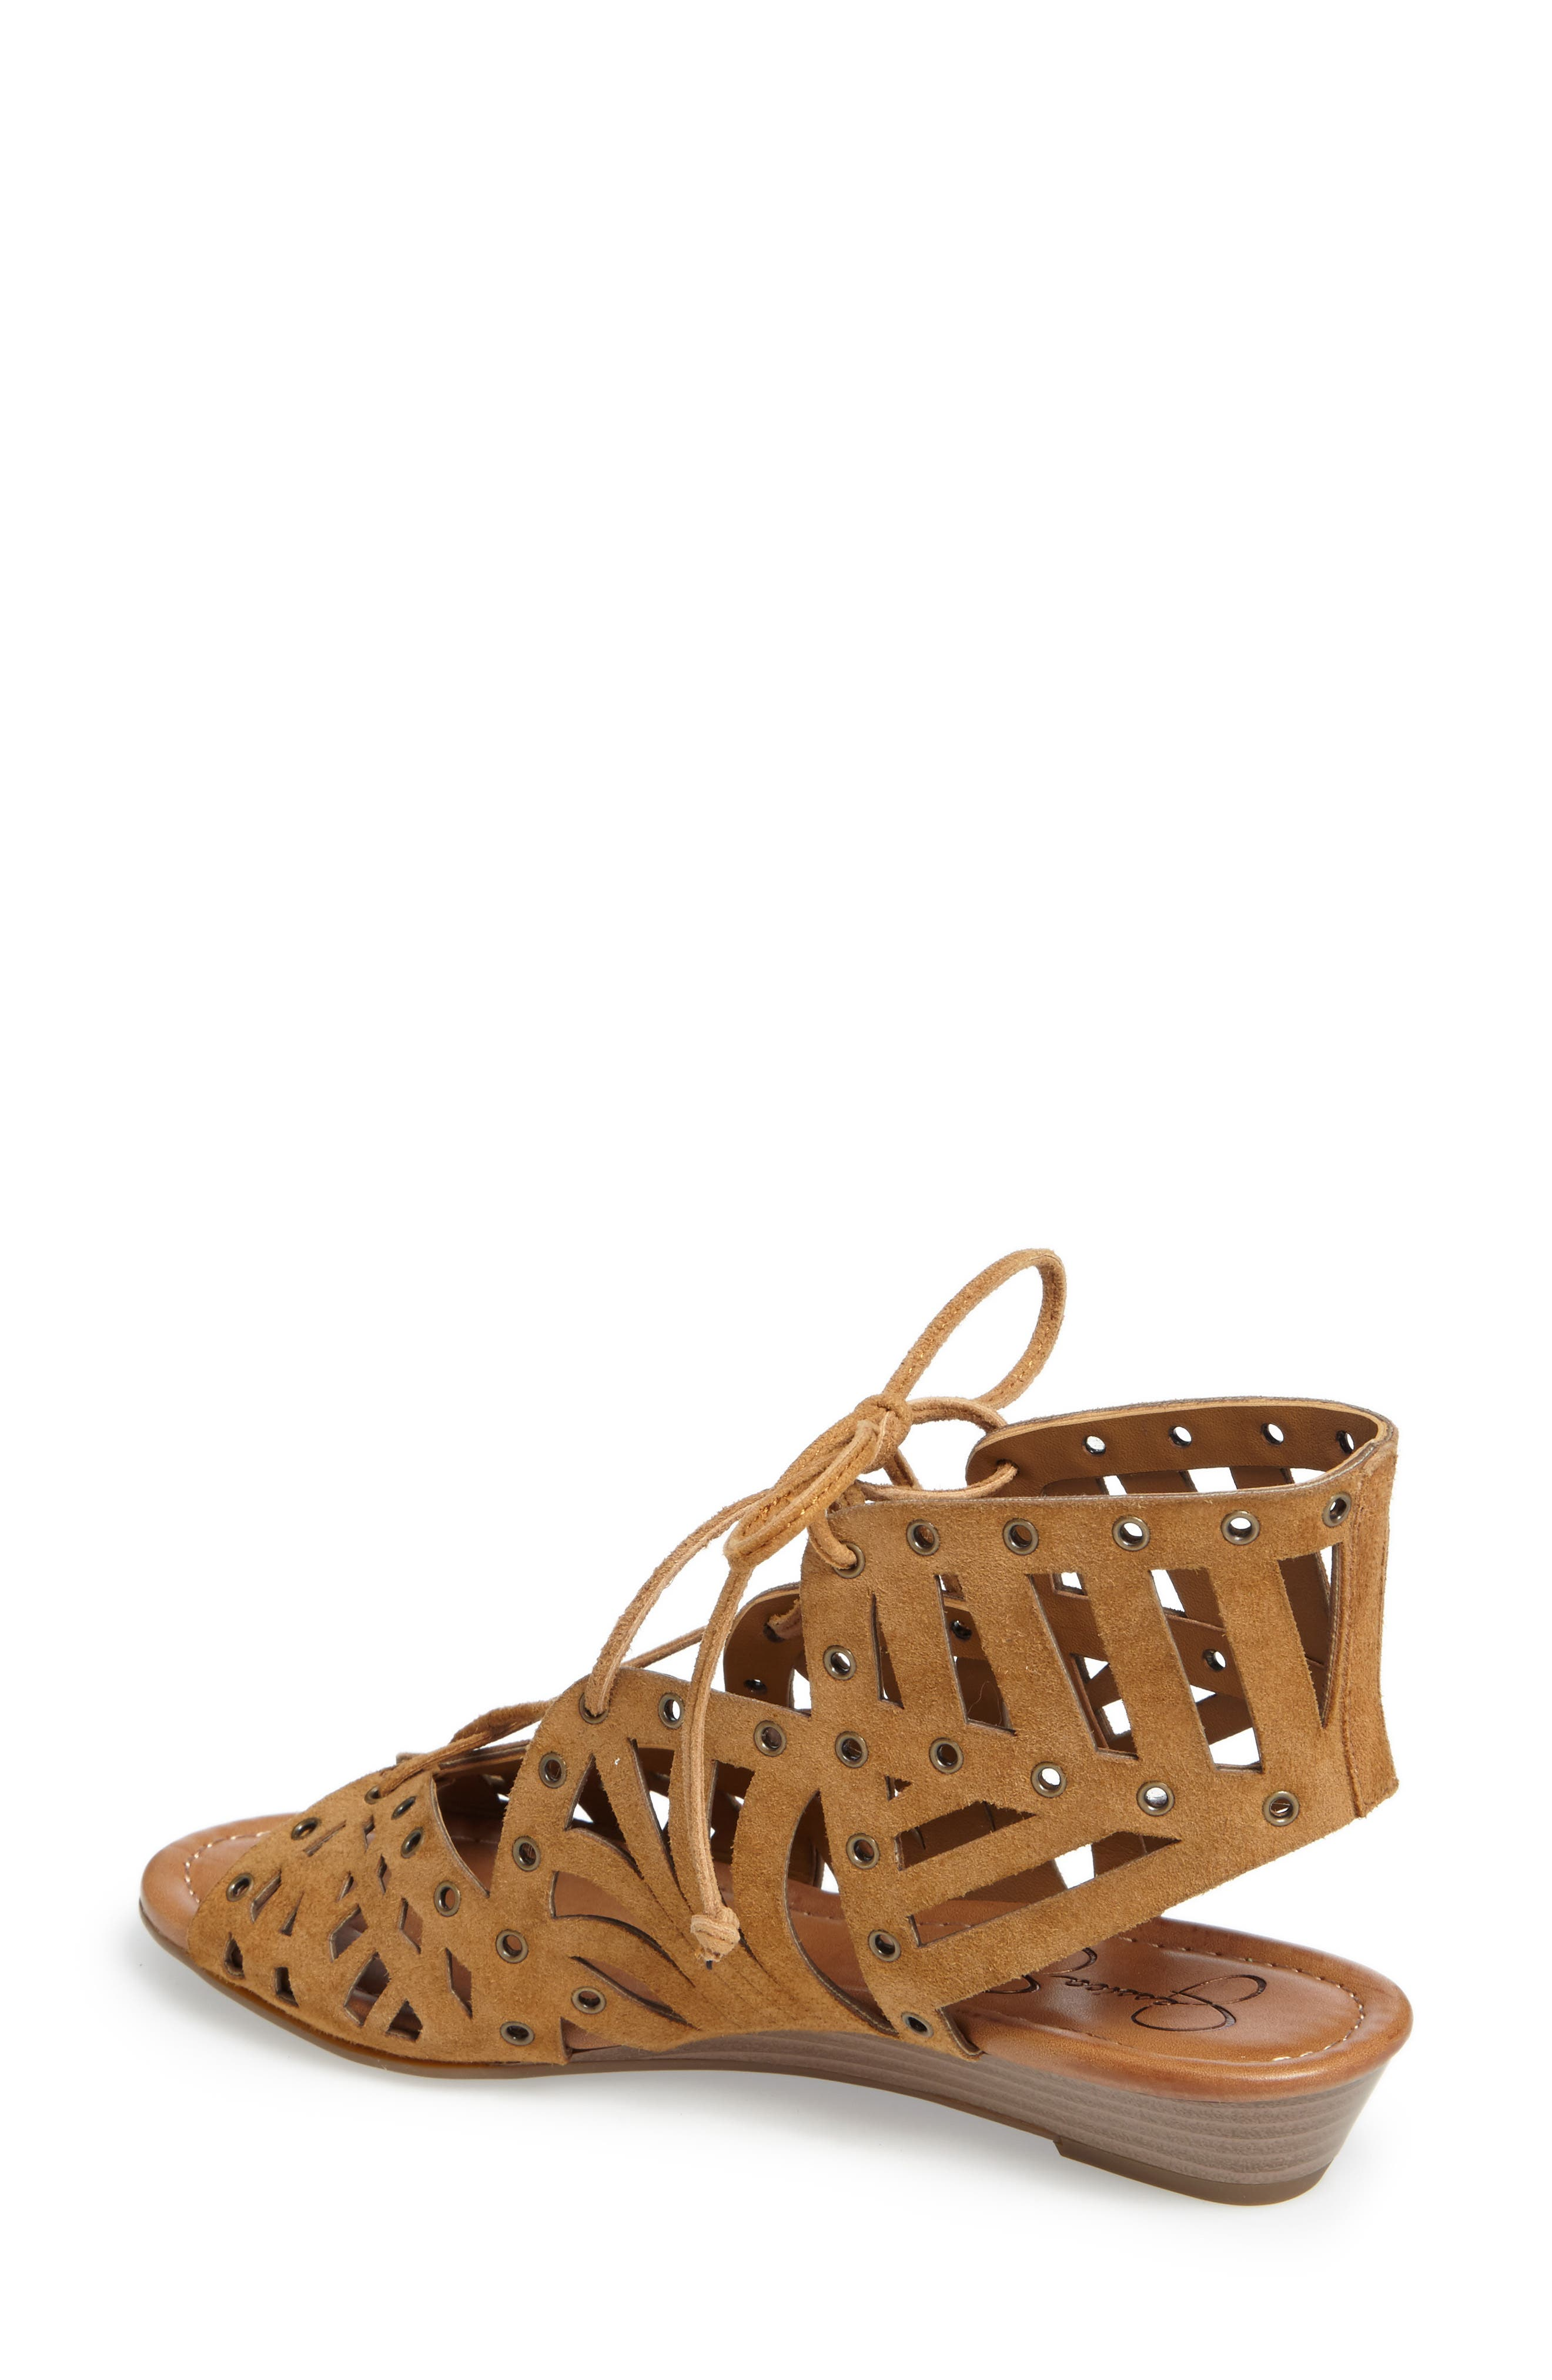 Lalaine Ghillie Lace Sandal,                             Alternate thumbnail 2, color,                             Honey Brown Suede